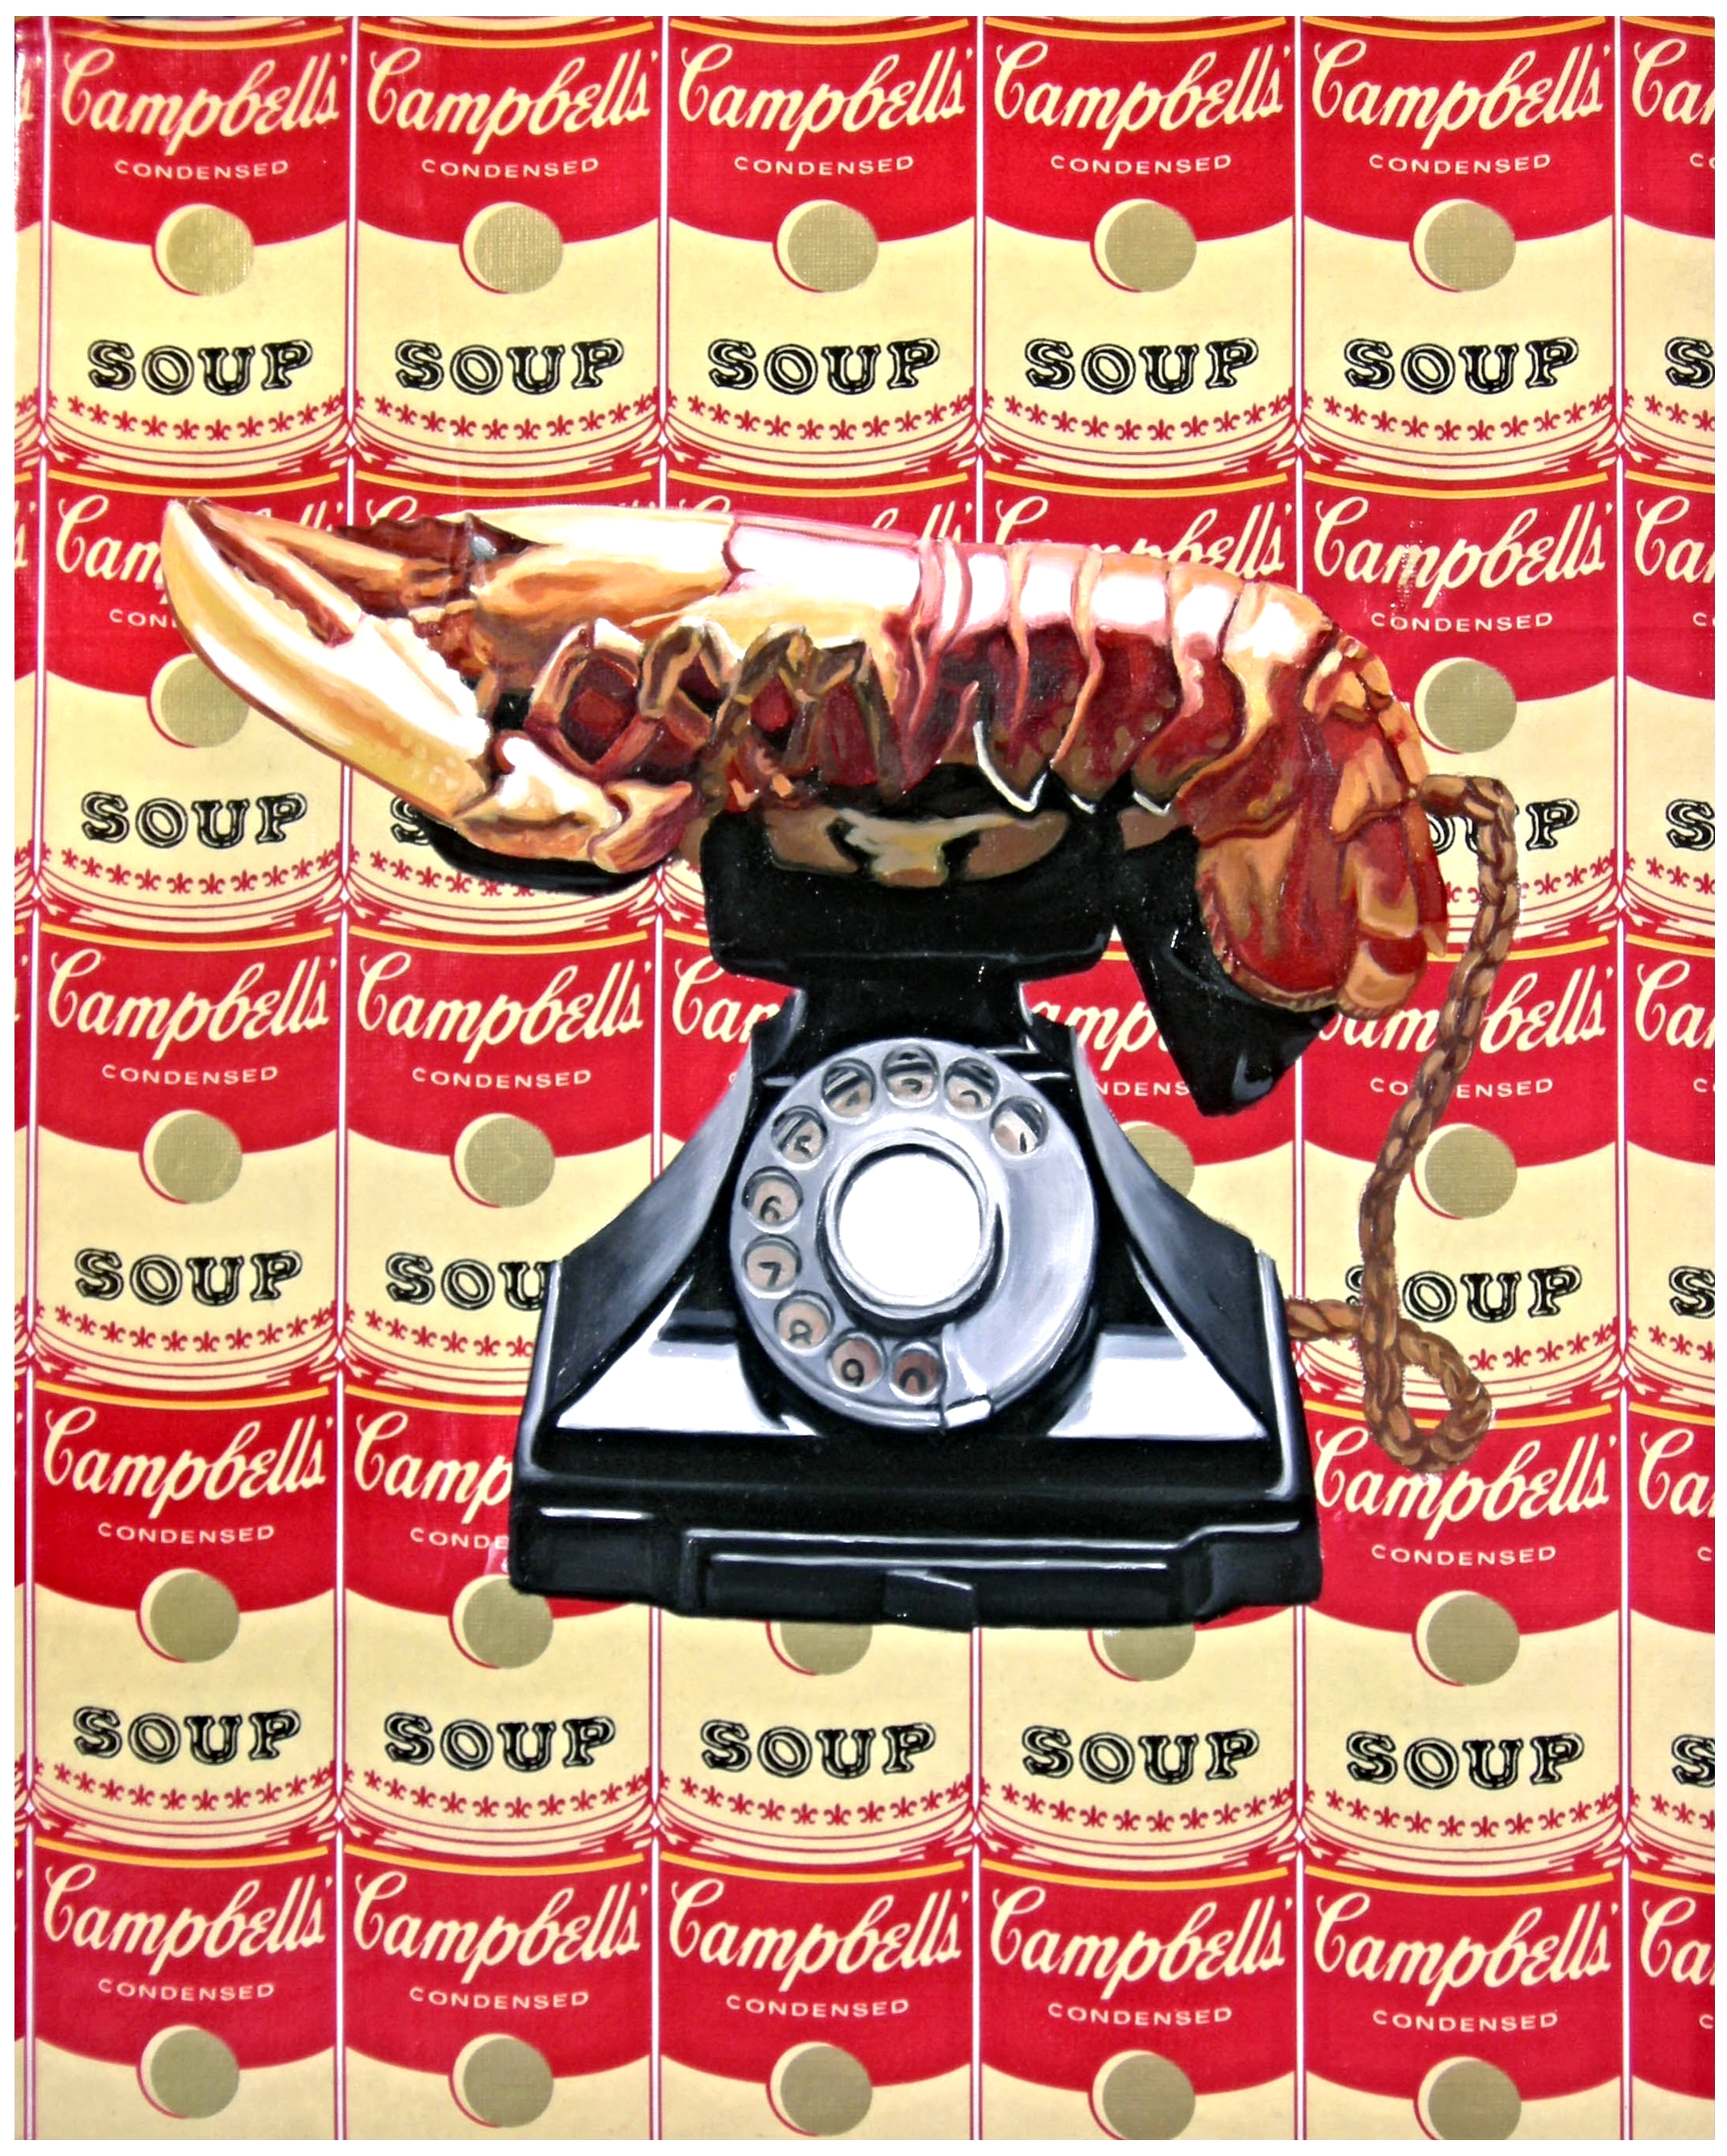 Lobster Phone  Mixed Media - 20 x 16in - 2008